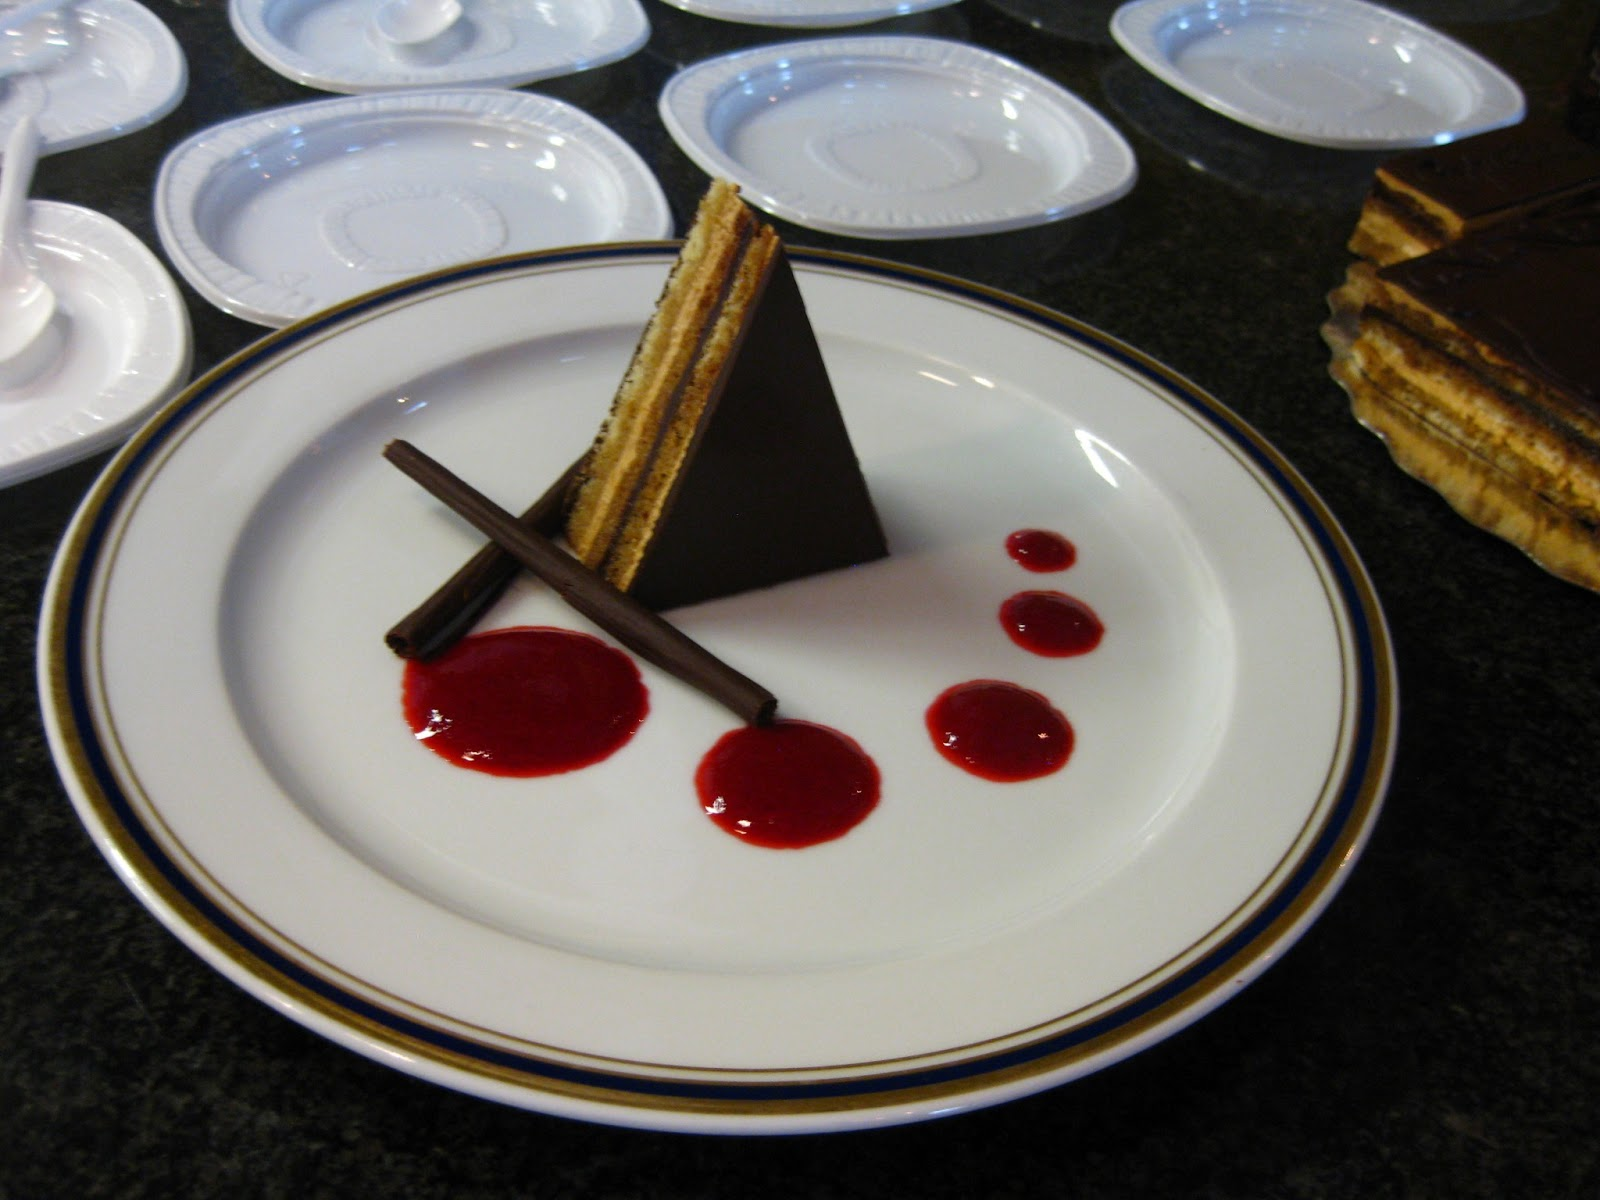 Opera Cake Plating Chef Eric's Plated Opera i